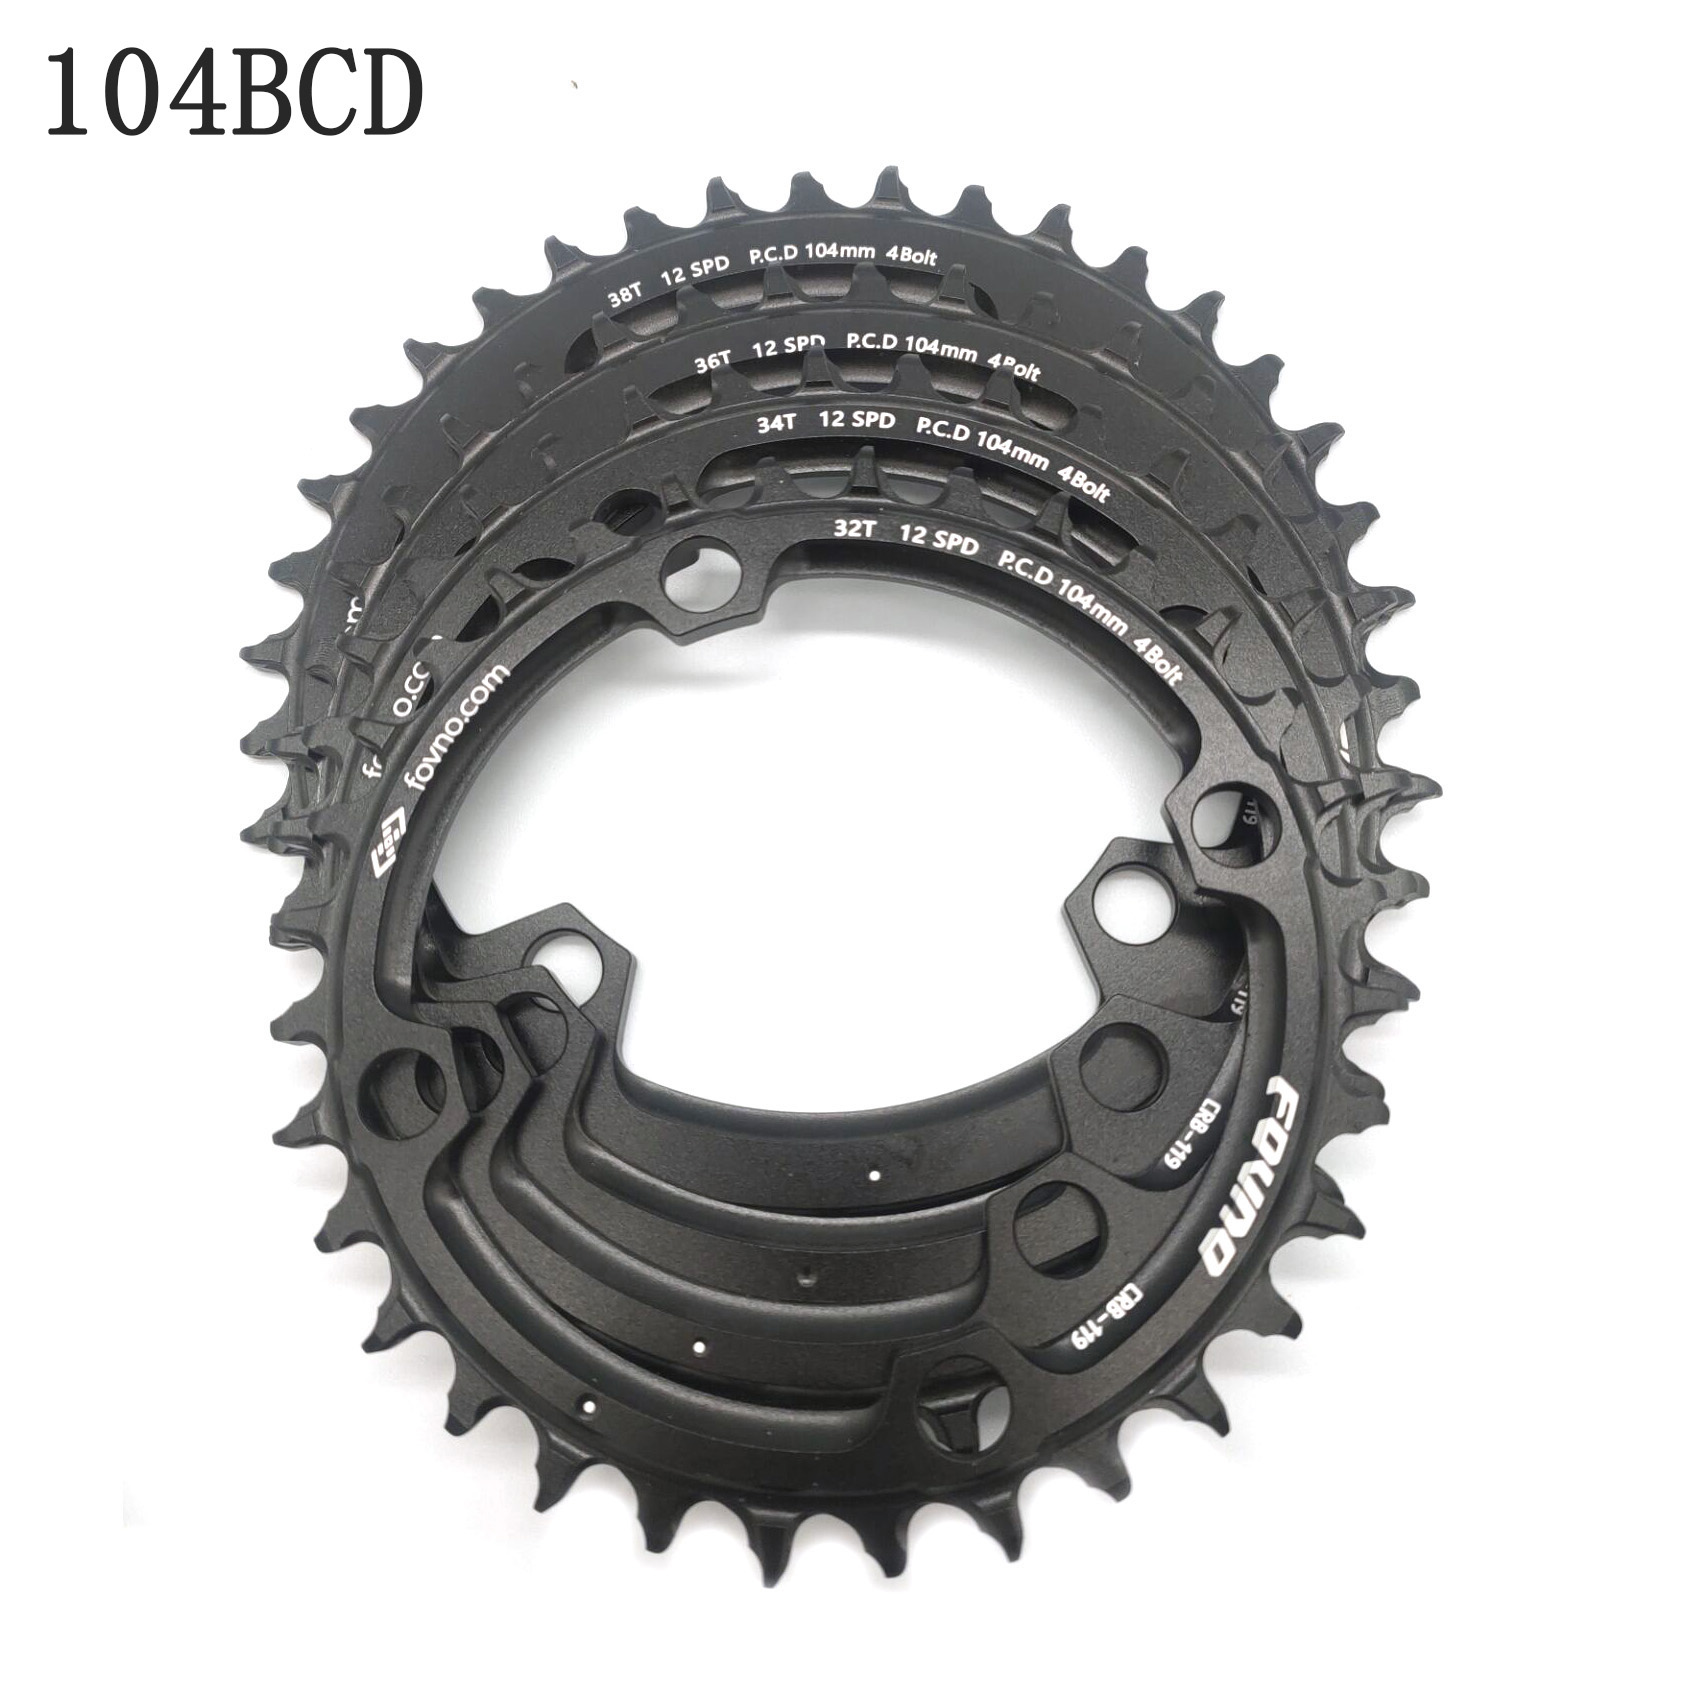 Fovno 104bcd 32/34/36/38 T Eagle Tooth Mountain MTB Bicycle Narrow Tray Wide Chainring forshimano m370 M410 M610 M615 M670 M780 image